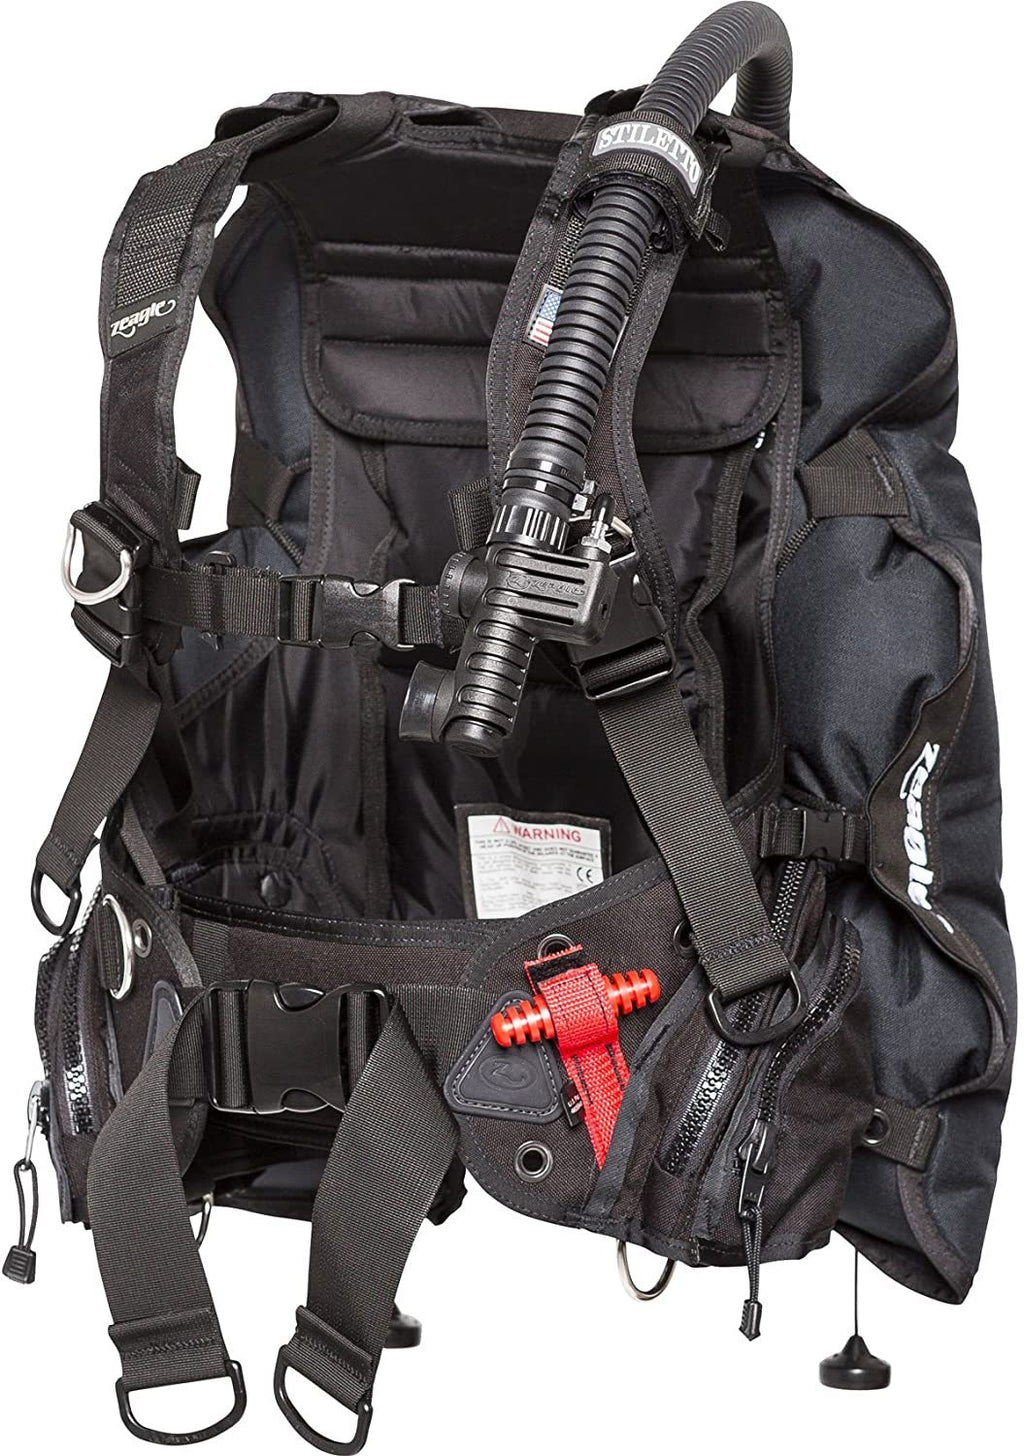 Zeagle Stiletto BCD with the Ripcord Weight System, Black, Small